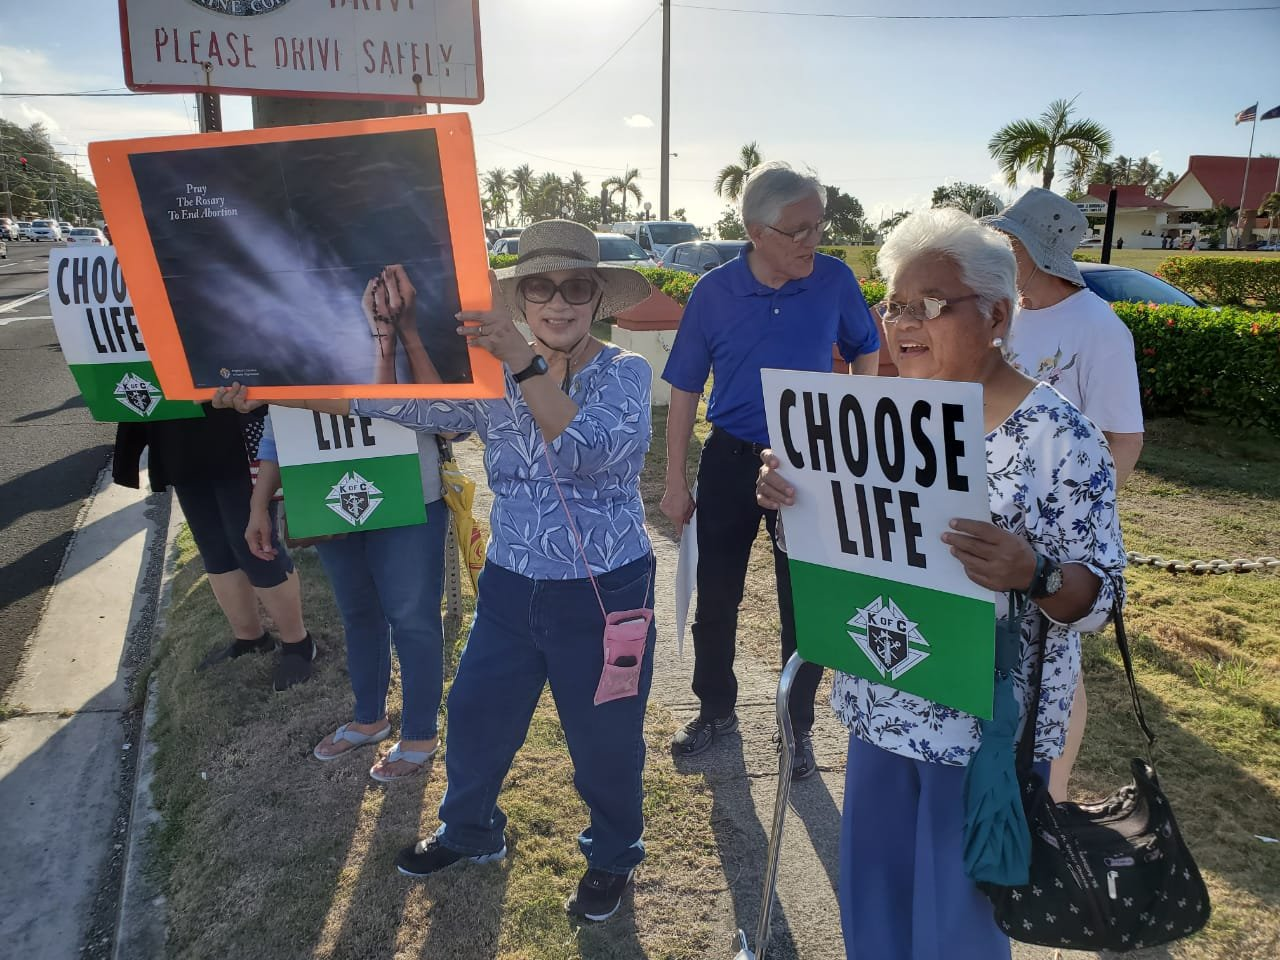 Woman died of heart attack during pro-life rally - KUAM com